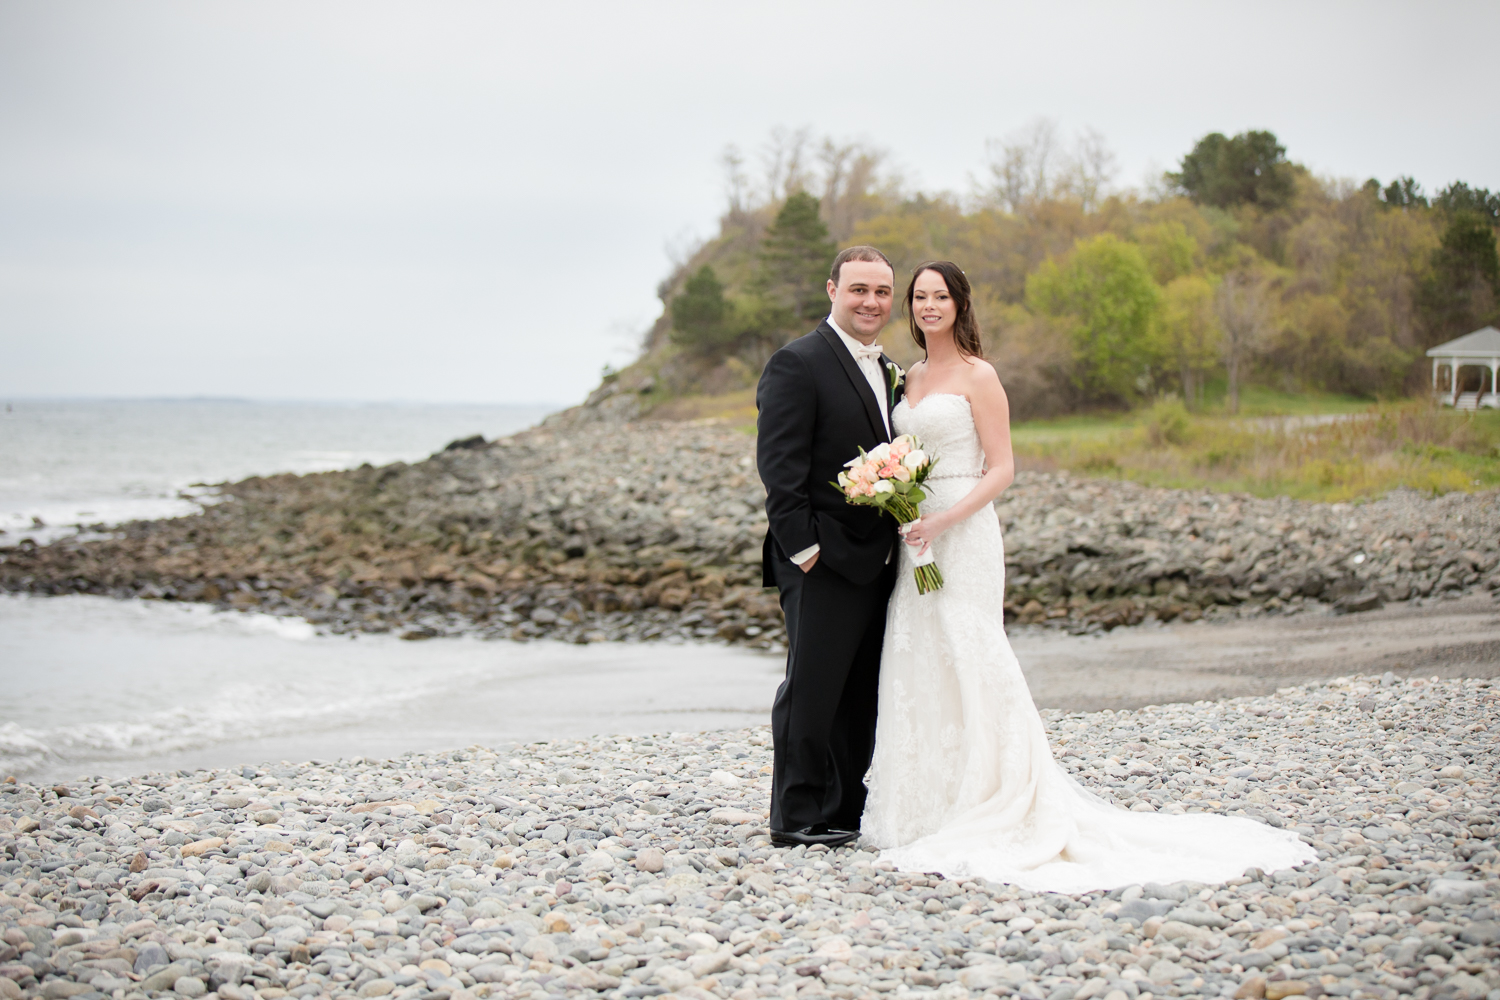 oceanview-of-nahant-wedding-26-north-studios-35.jpg